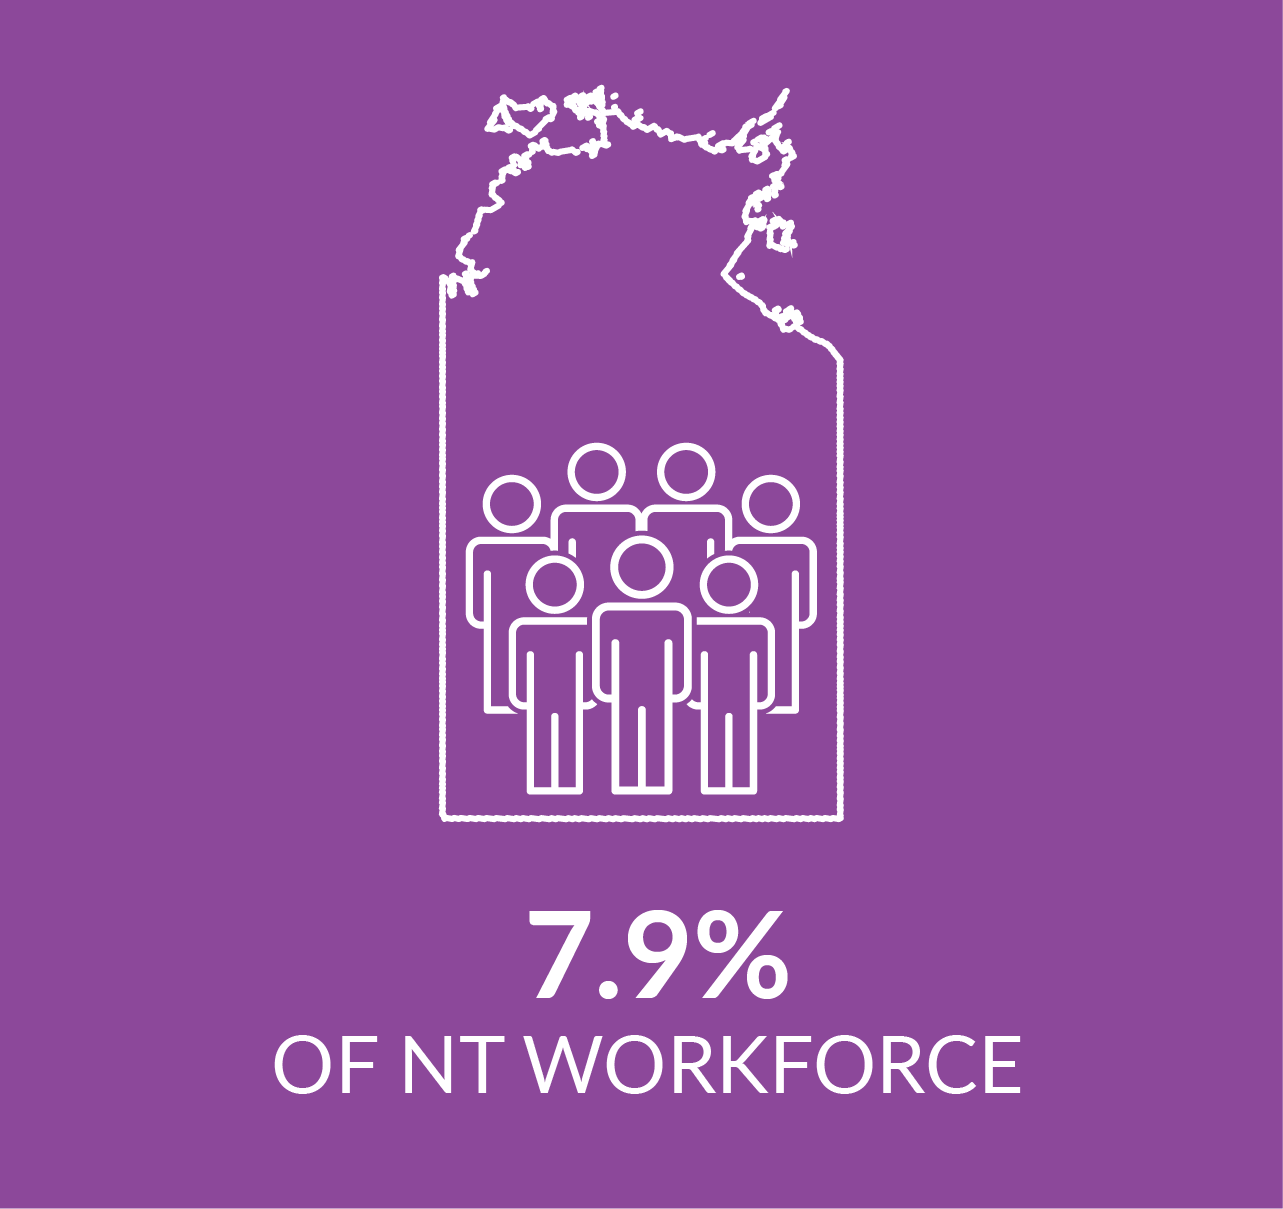 Infographic showing workforce